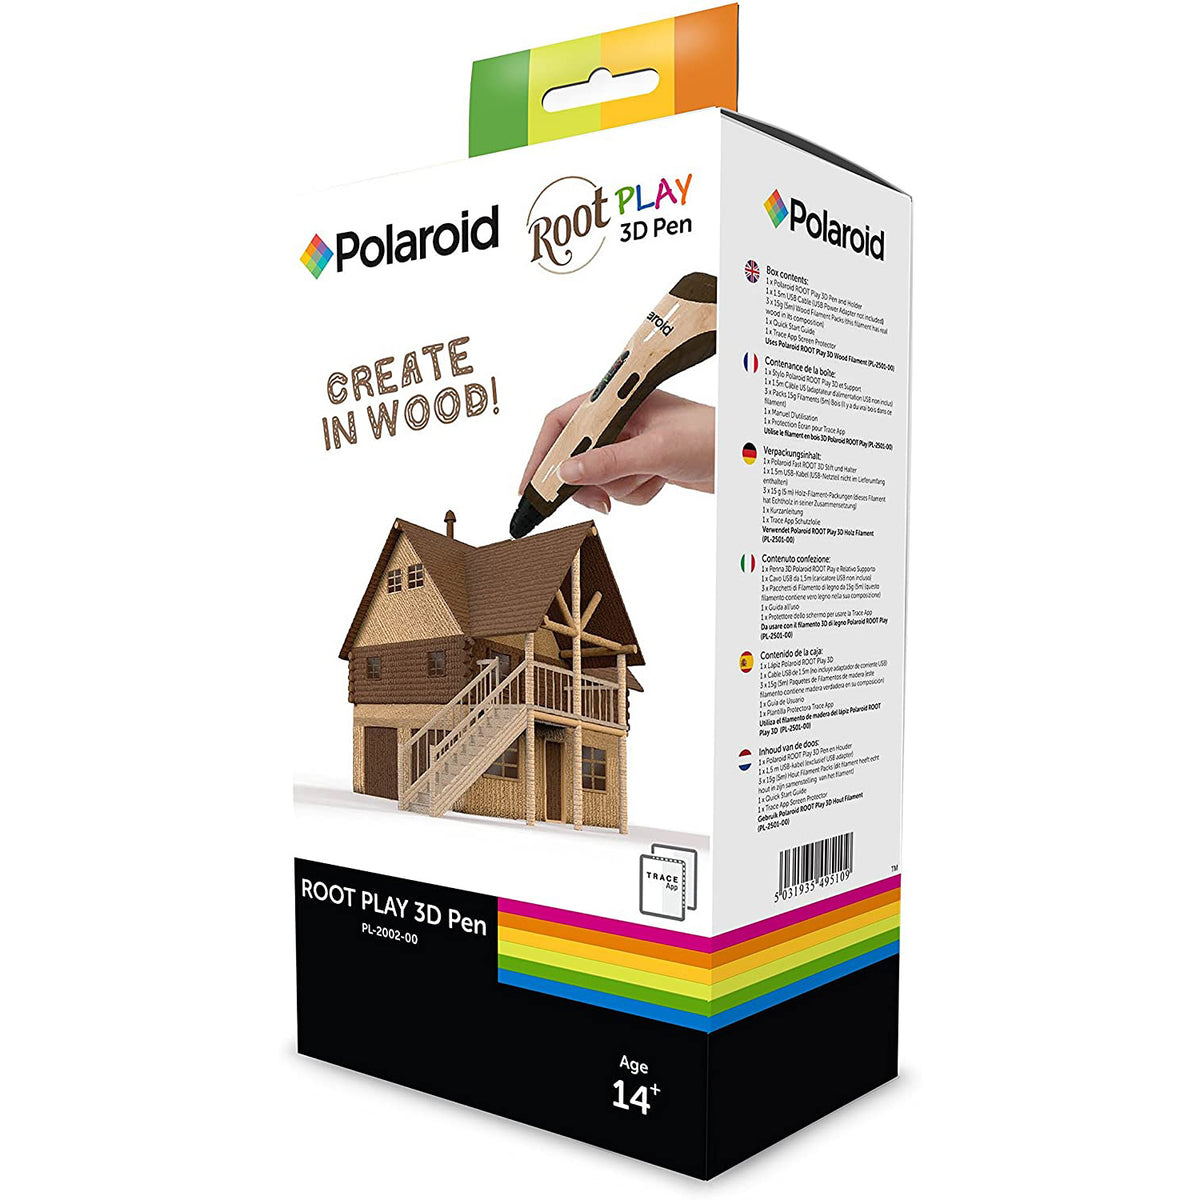 Image of Polaroid ROOT Play 3D Pen in packaging